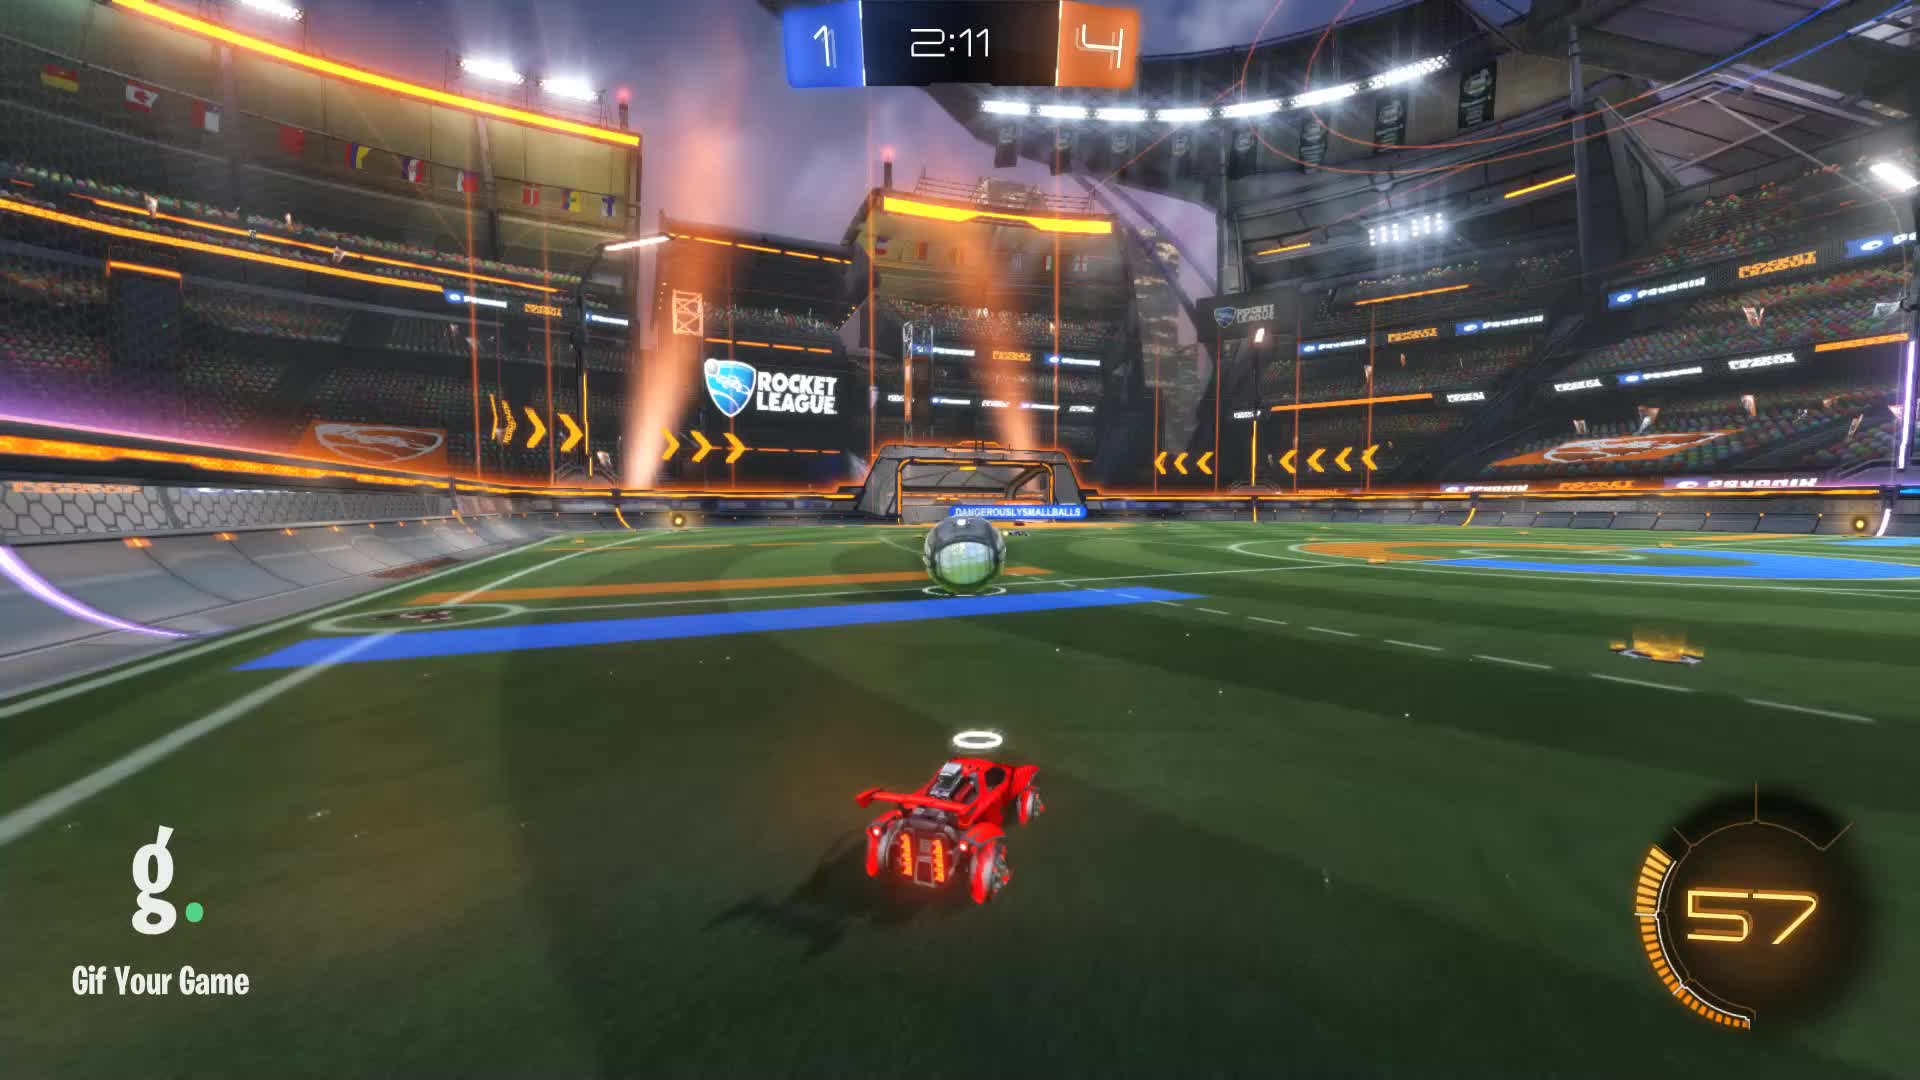 Gif Your Game, GifYourGame, Goal, Rocket League, RocketLeague, lilmoist., Goal 6: Annoy. GIFs